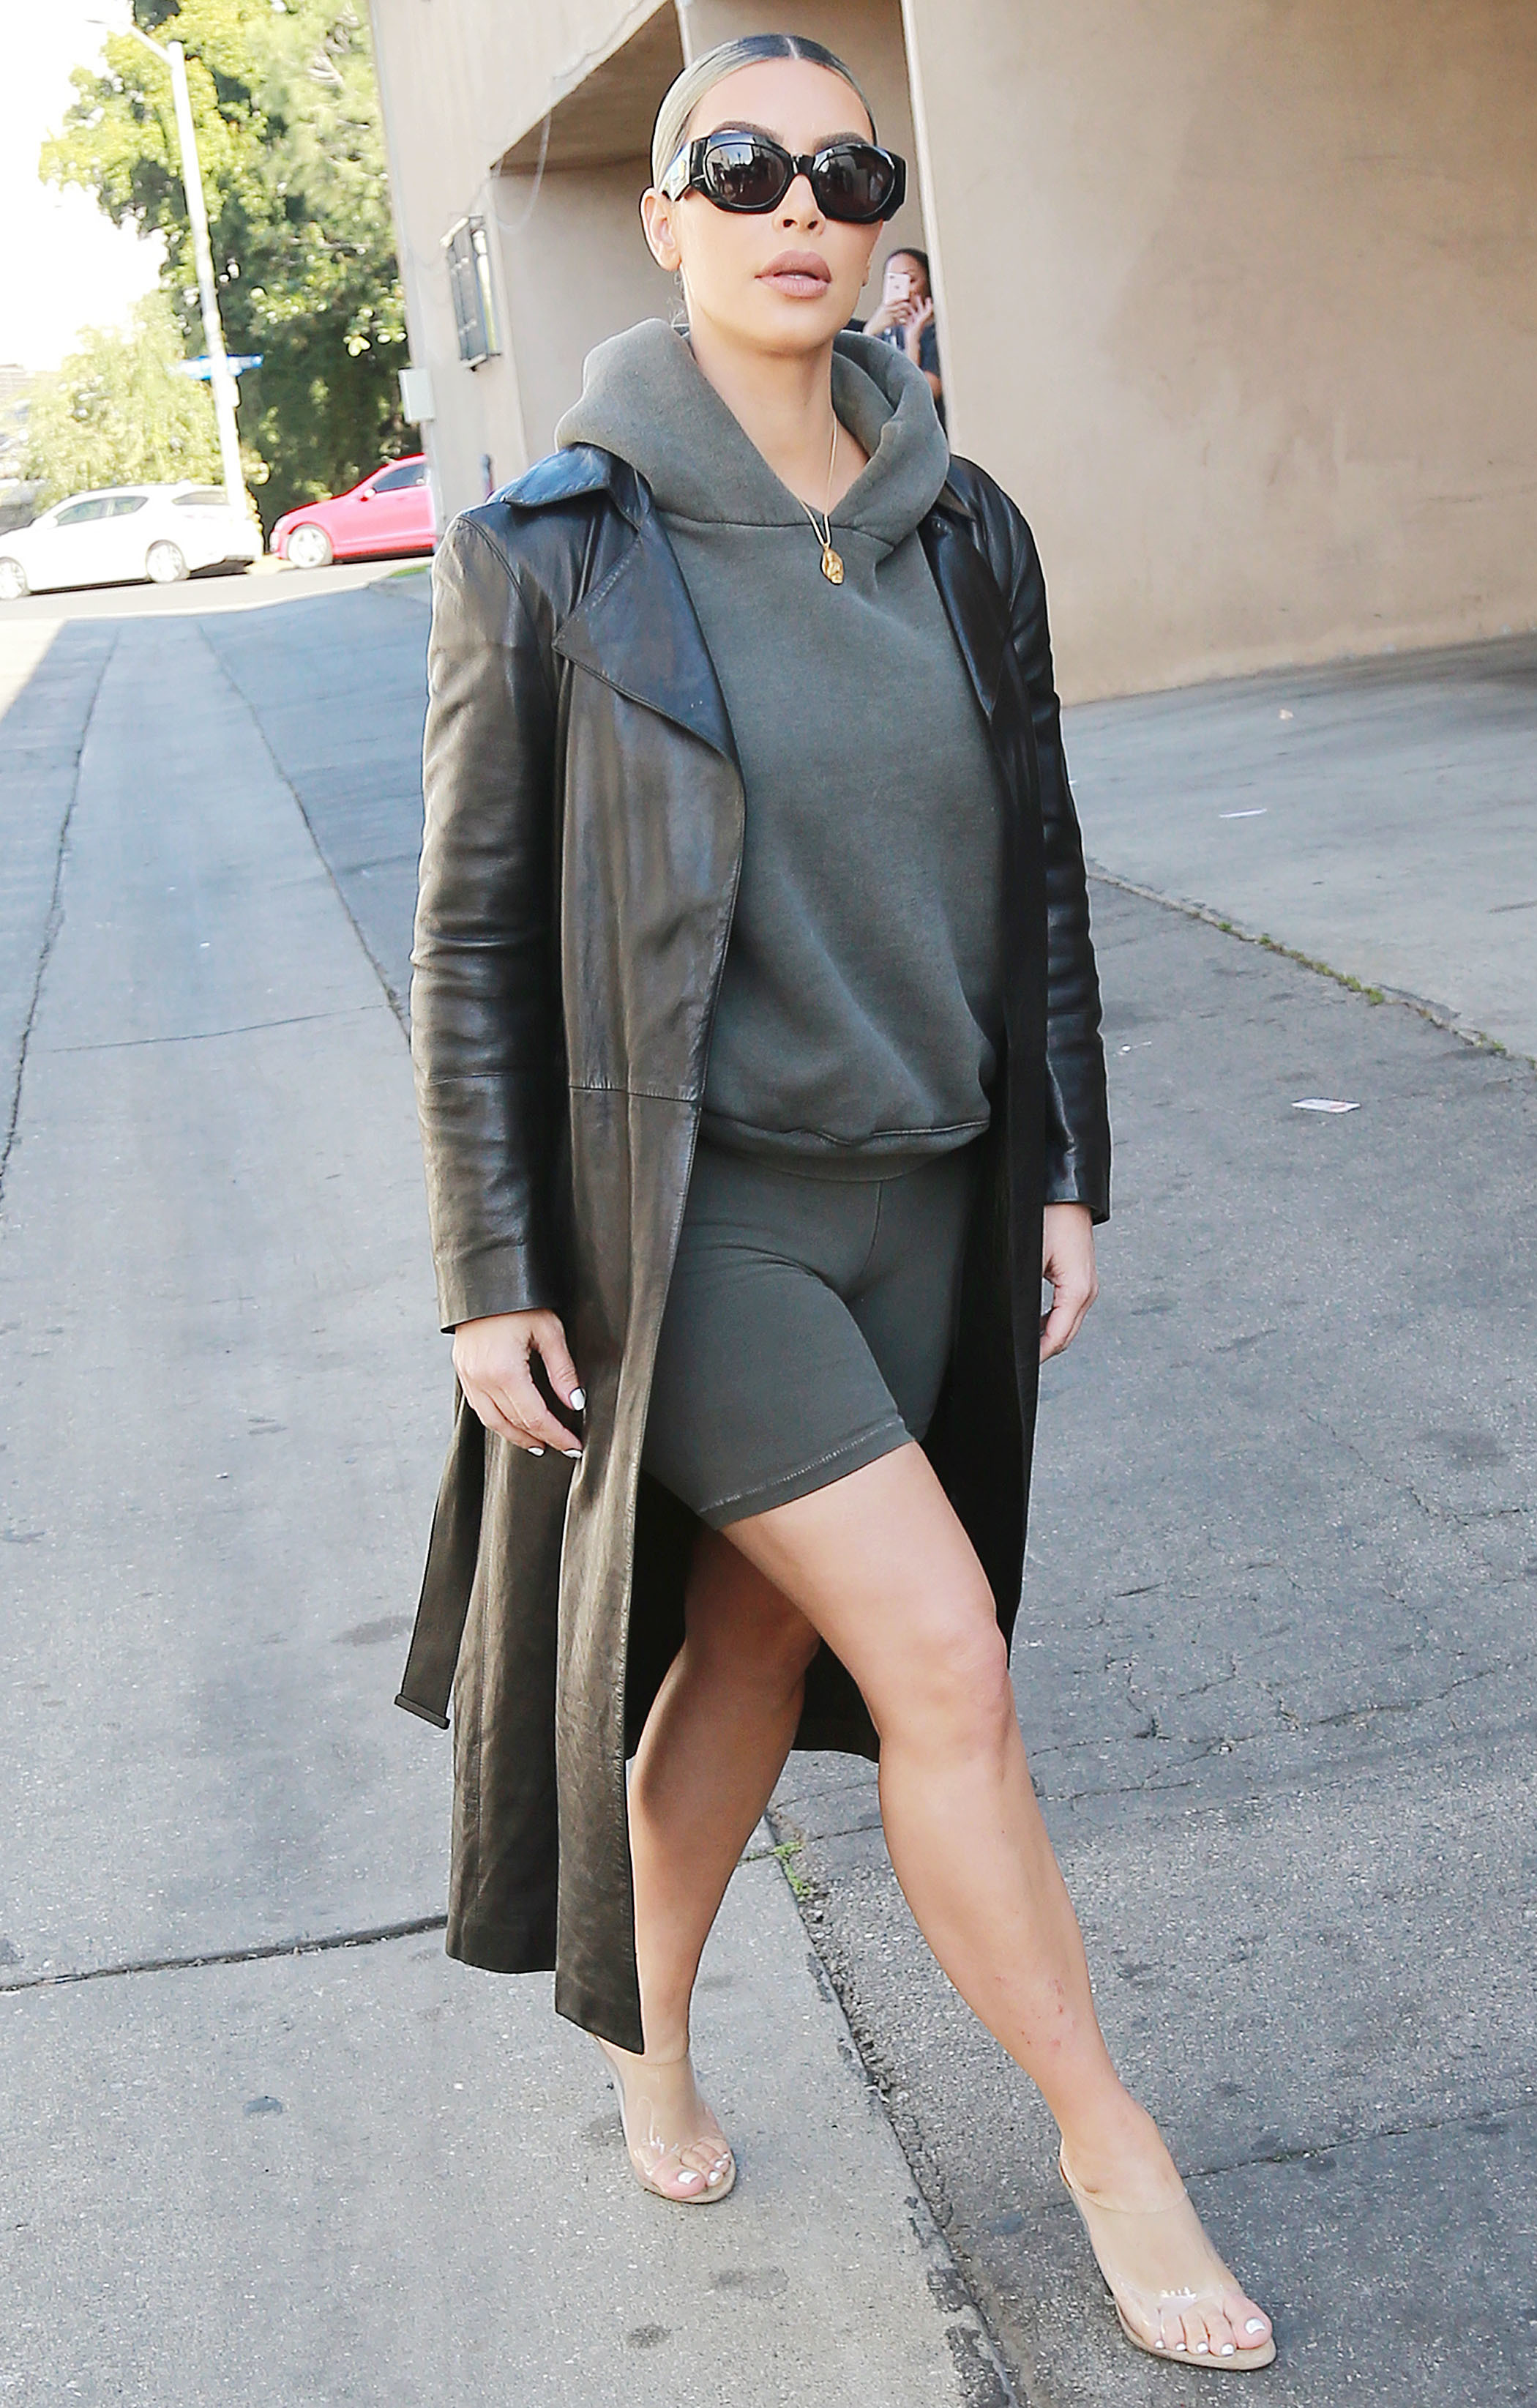 Kim Kardashian West shows off her toned legs in biker shorts and leather trenchcoat as she stops by DASH store in Los Angeles on Feb. 7, 2018.